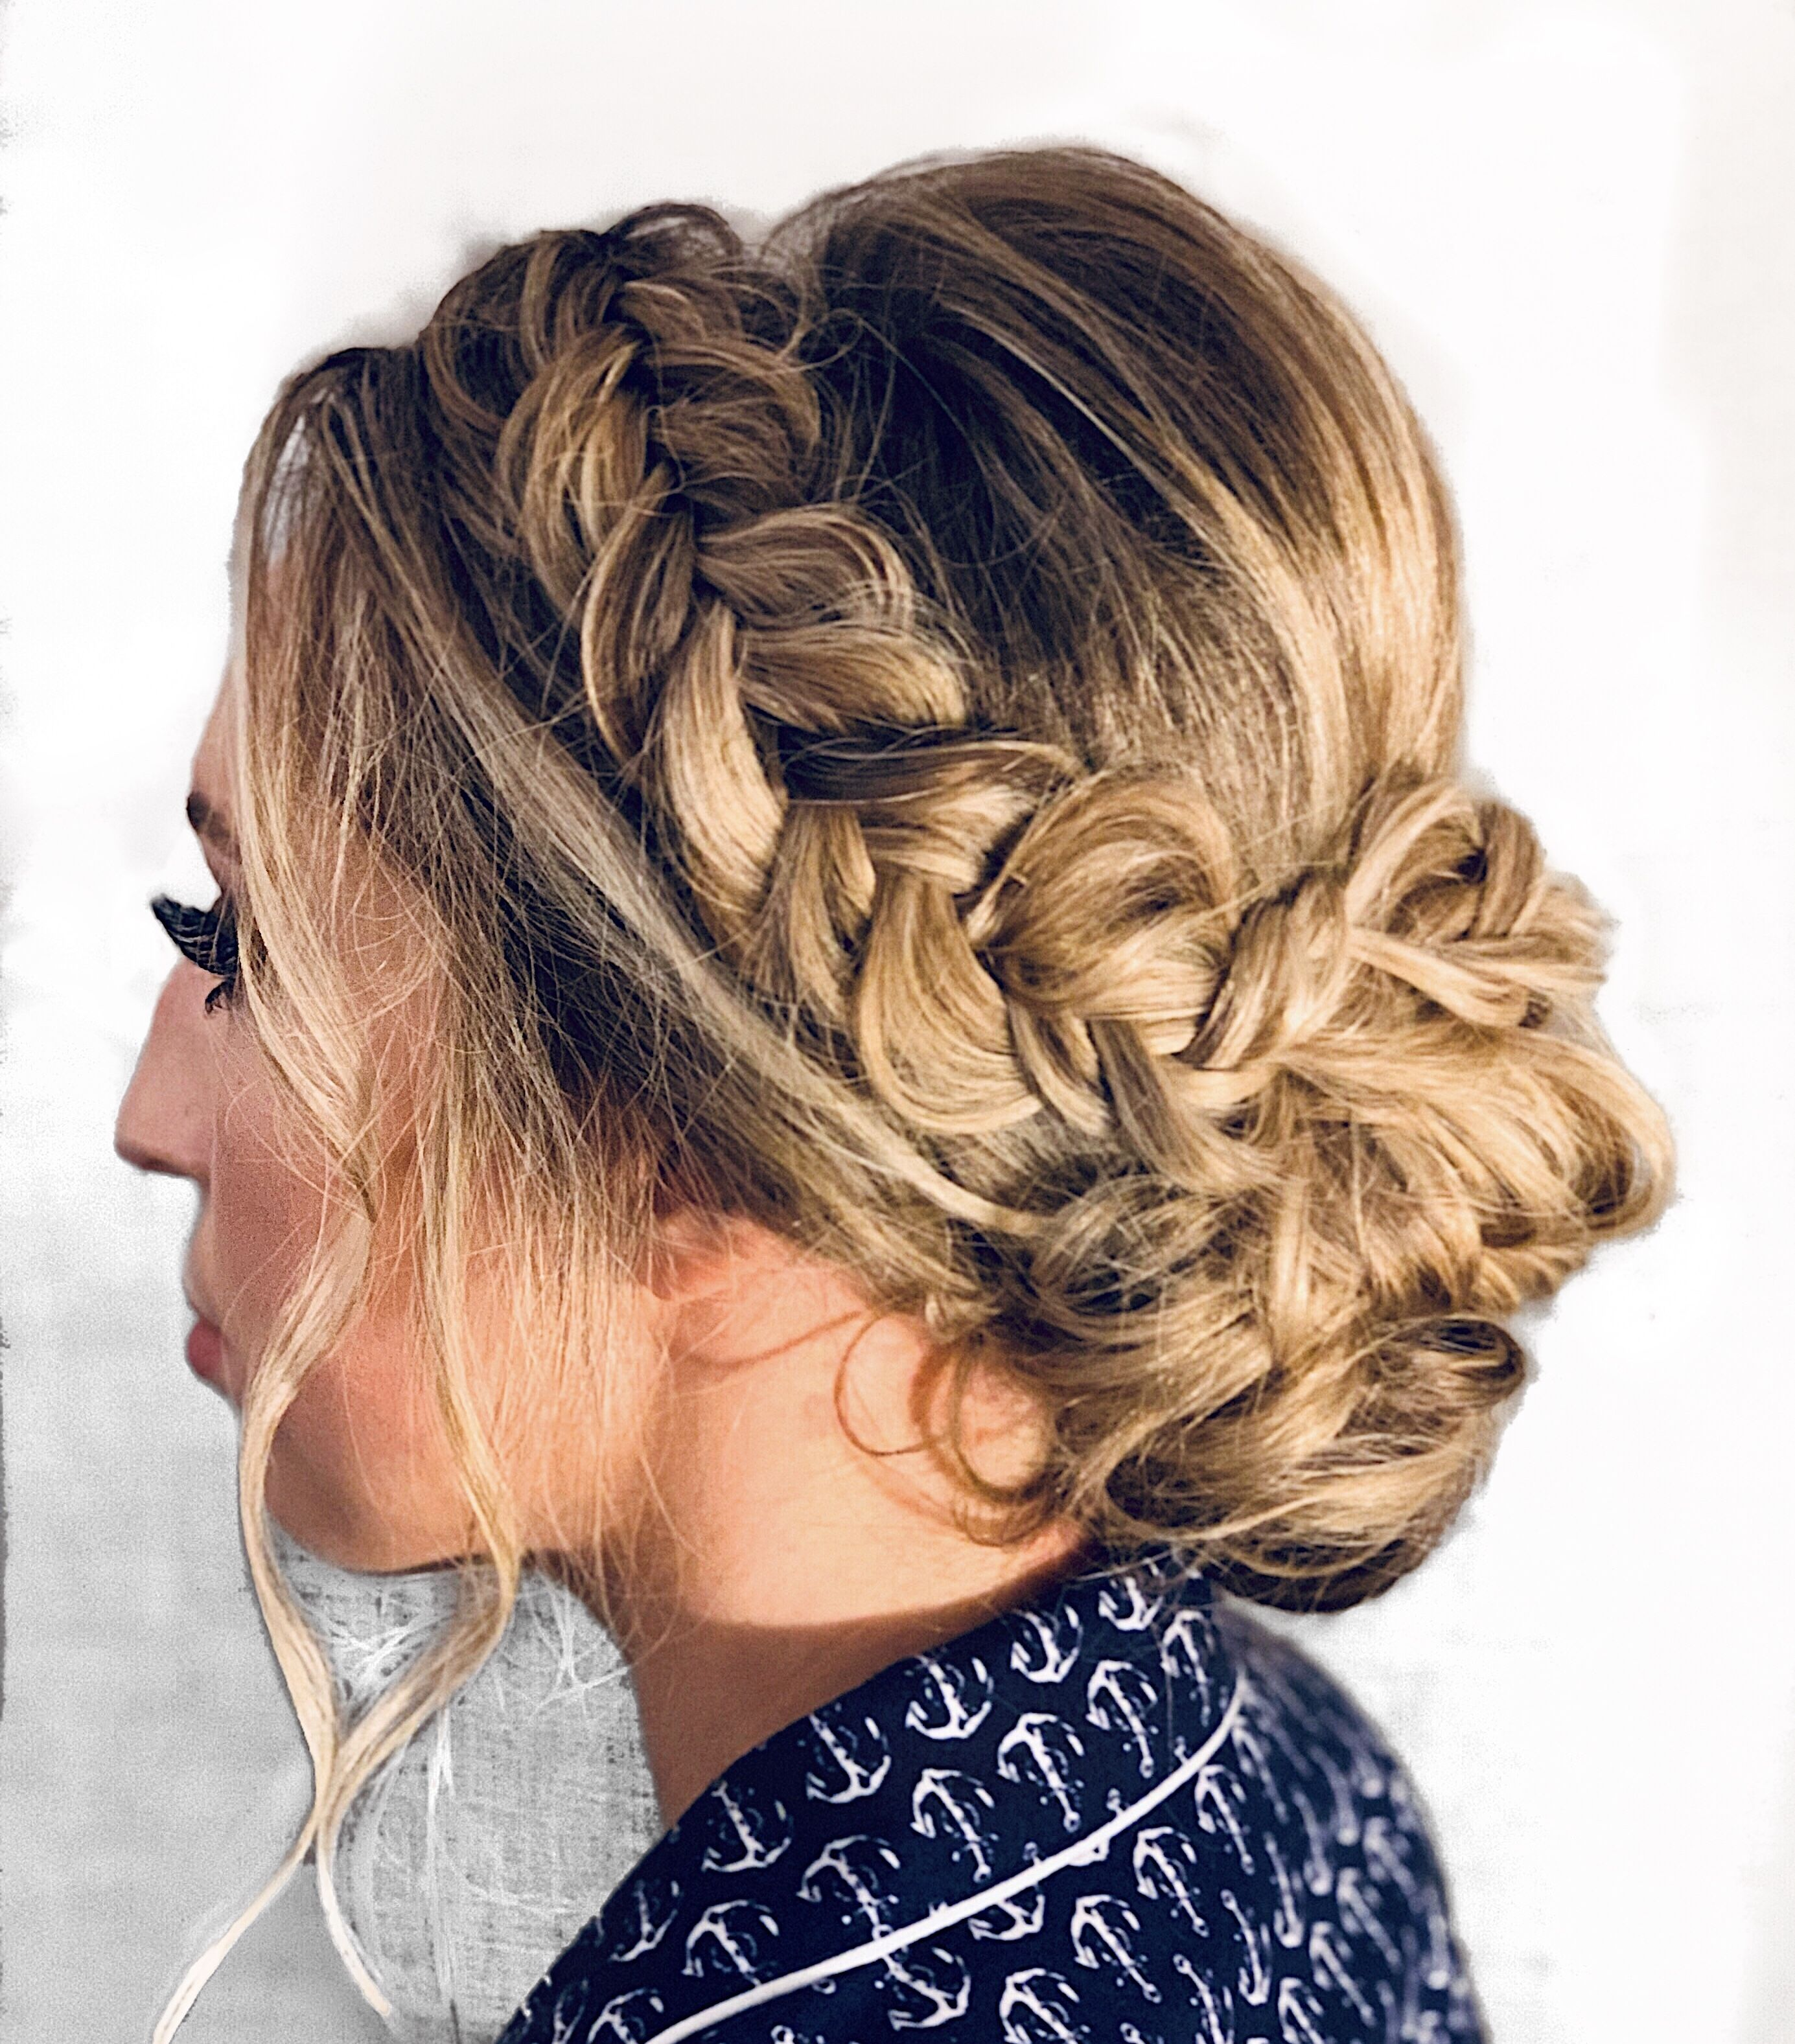 Fishtail Bridal Braid Into A Low Bun Updo Loose And Textured For